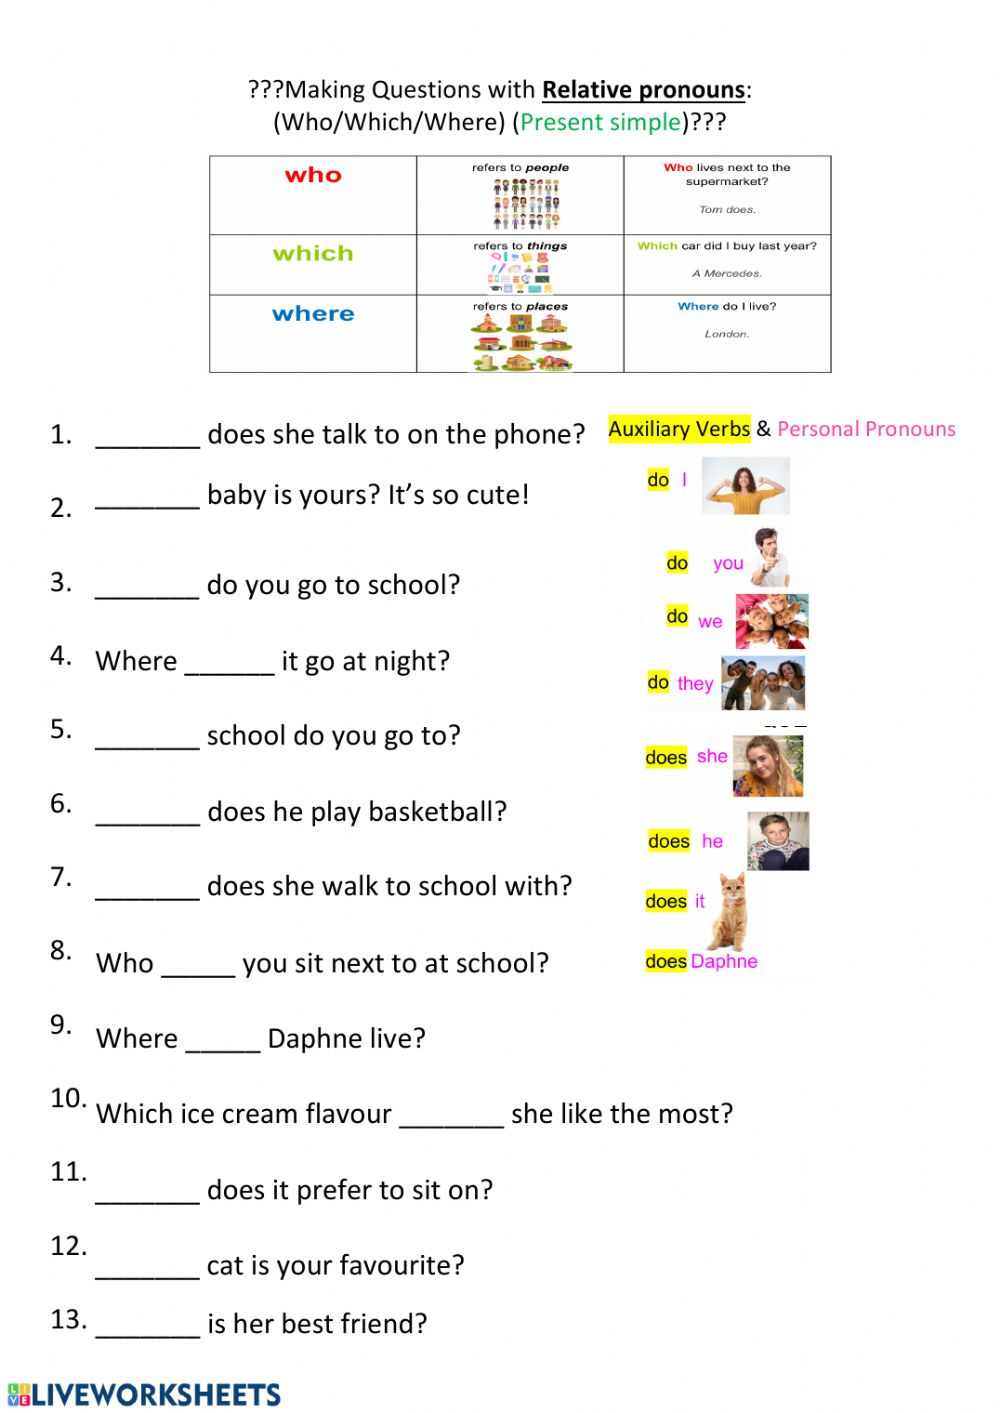 medium resolution of Relative pronoun questions (which-where-who) worksheet